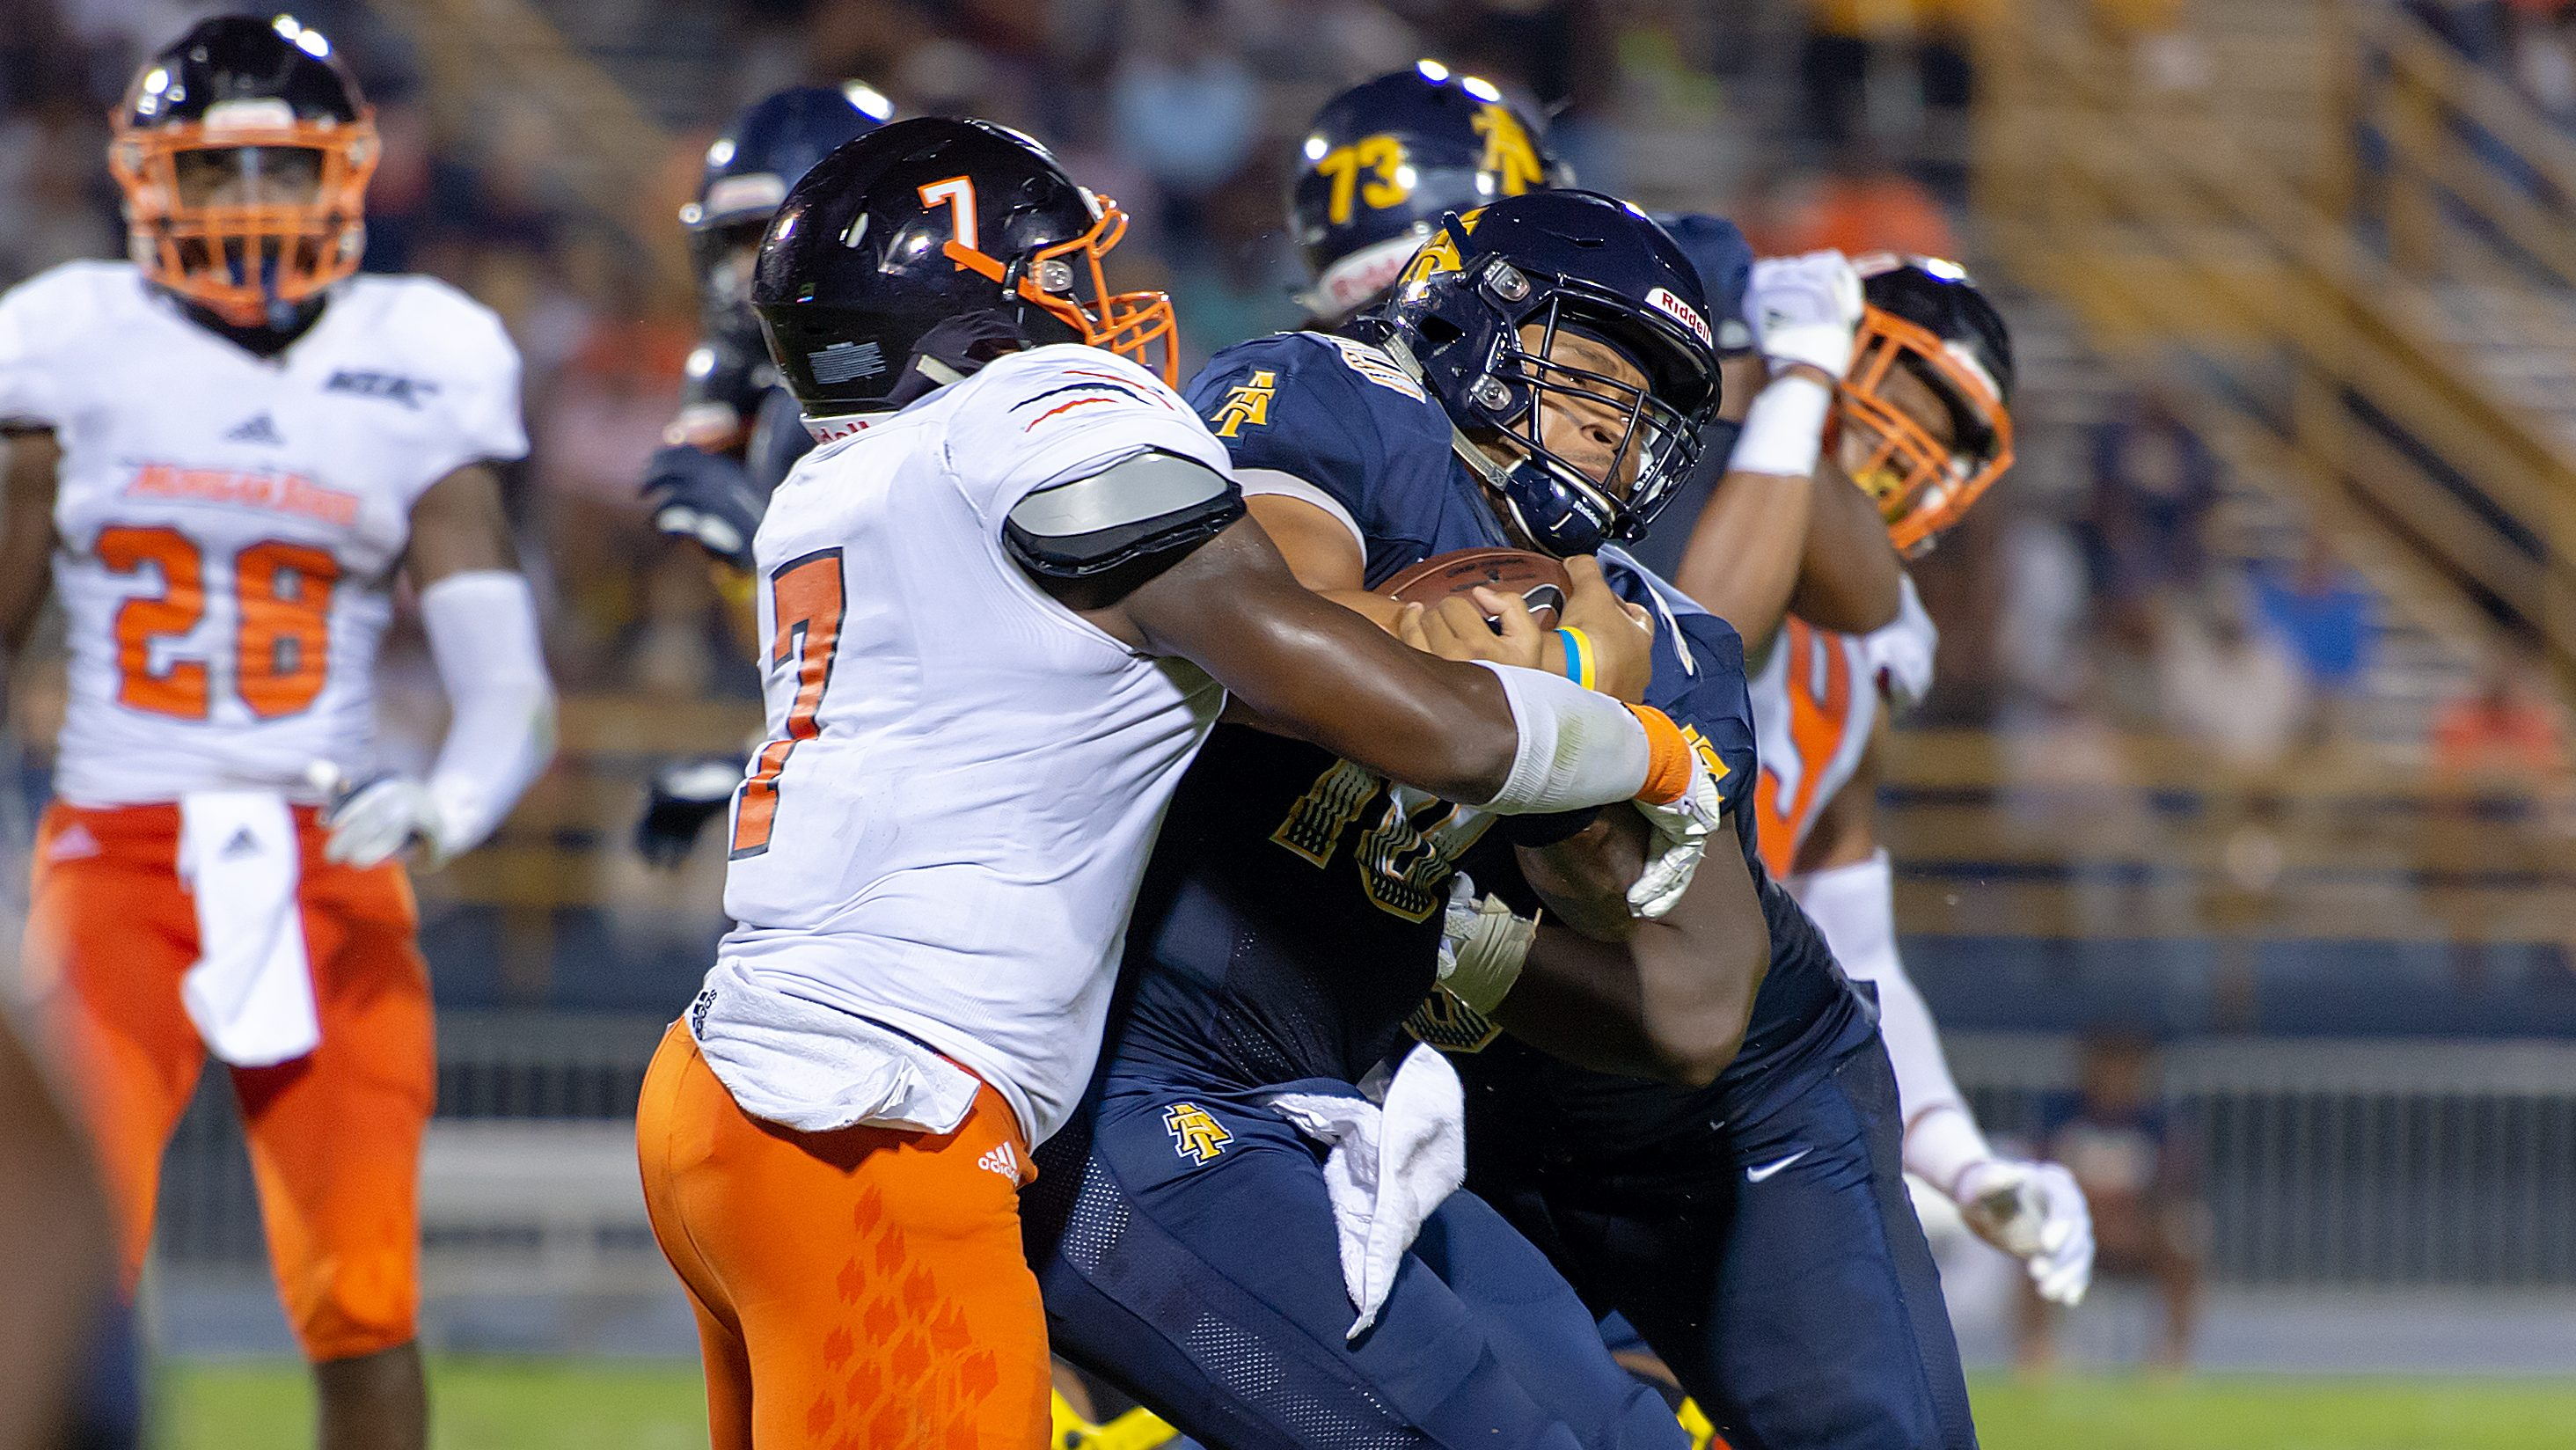 2018 A&T Football vs Morgan State  www.ncataggies.com – Photo by: Kevin L. Dorsey